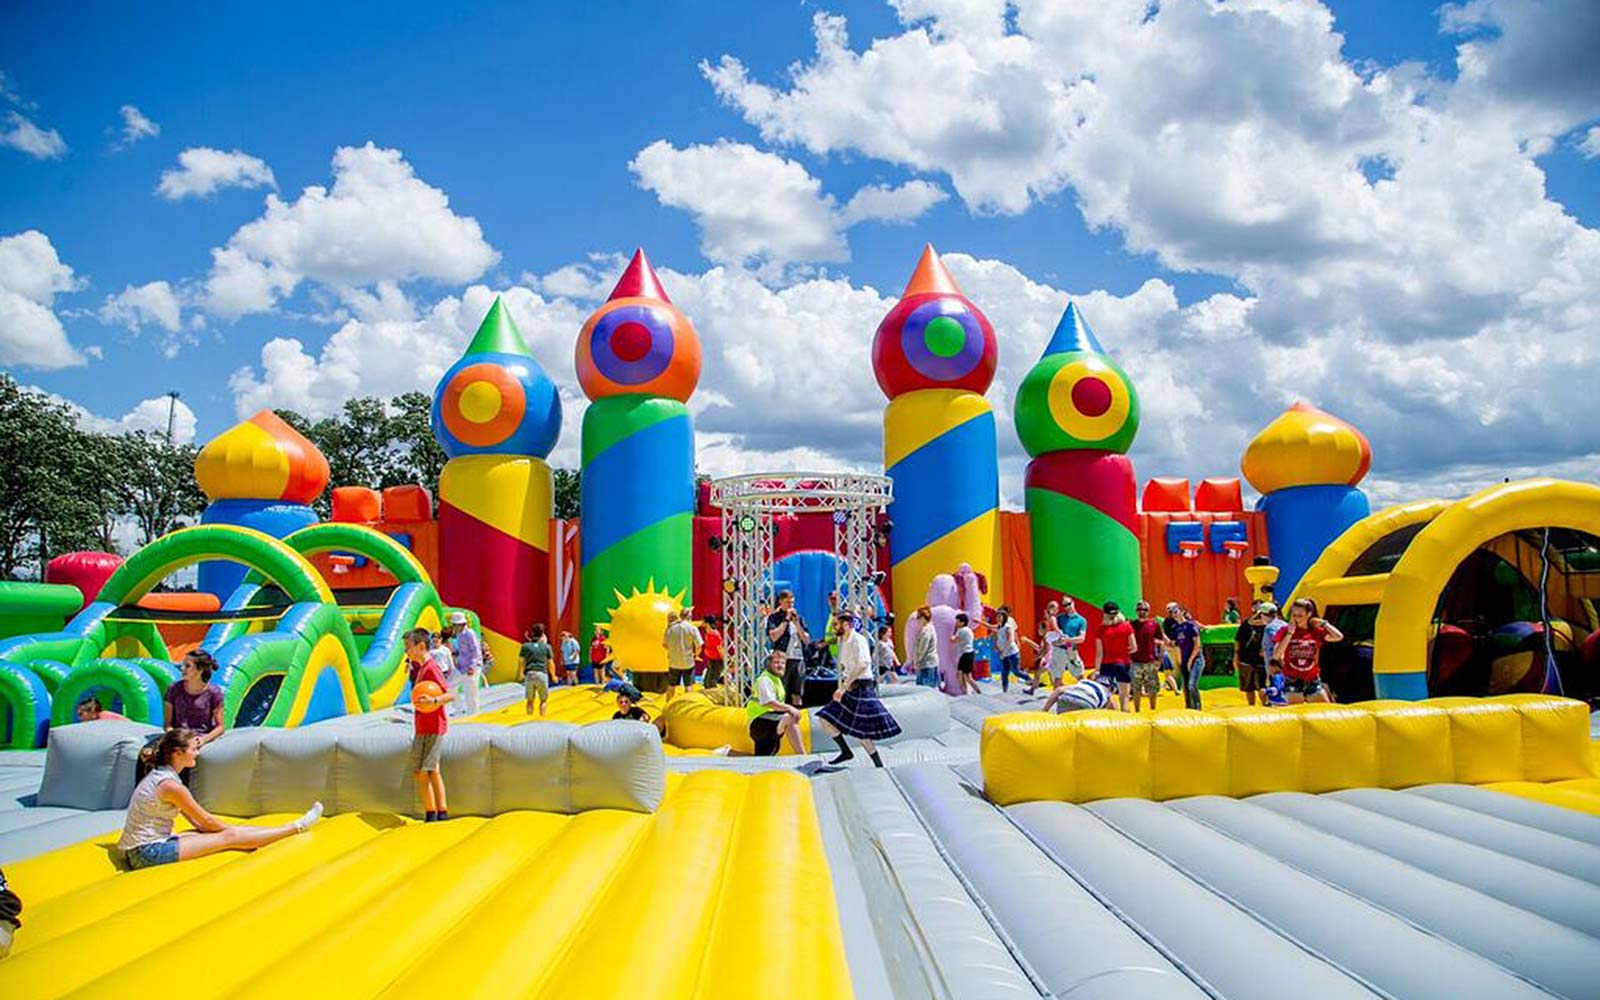 The World's Largest Bounce House May Be Coming to a City Near You